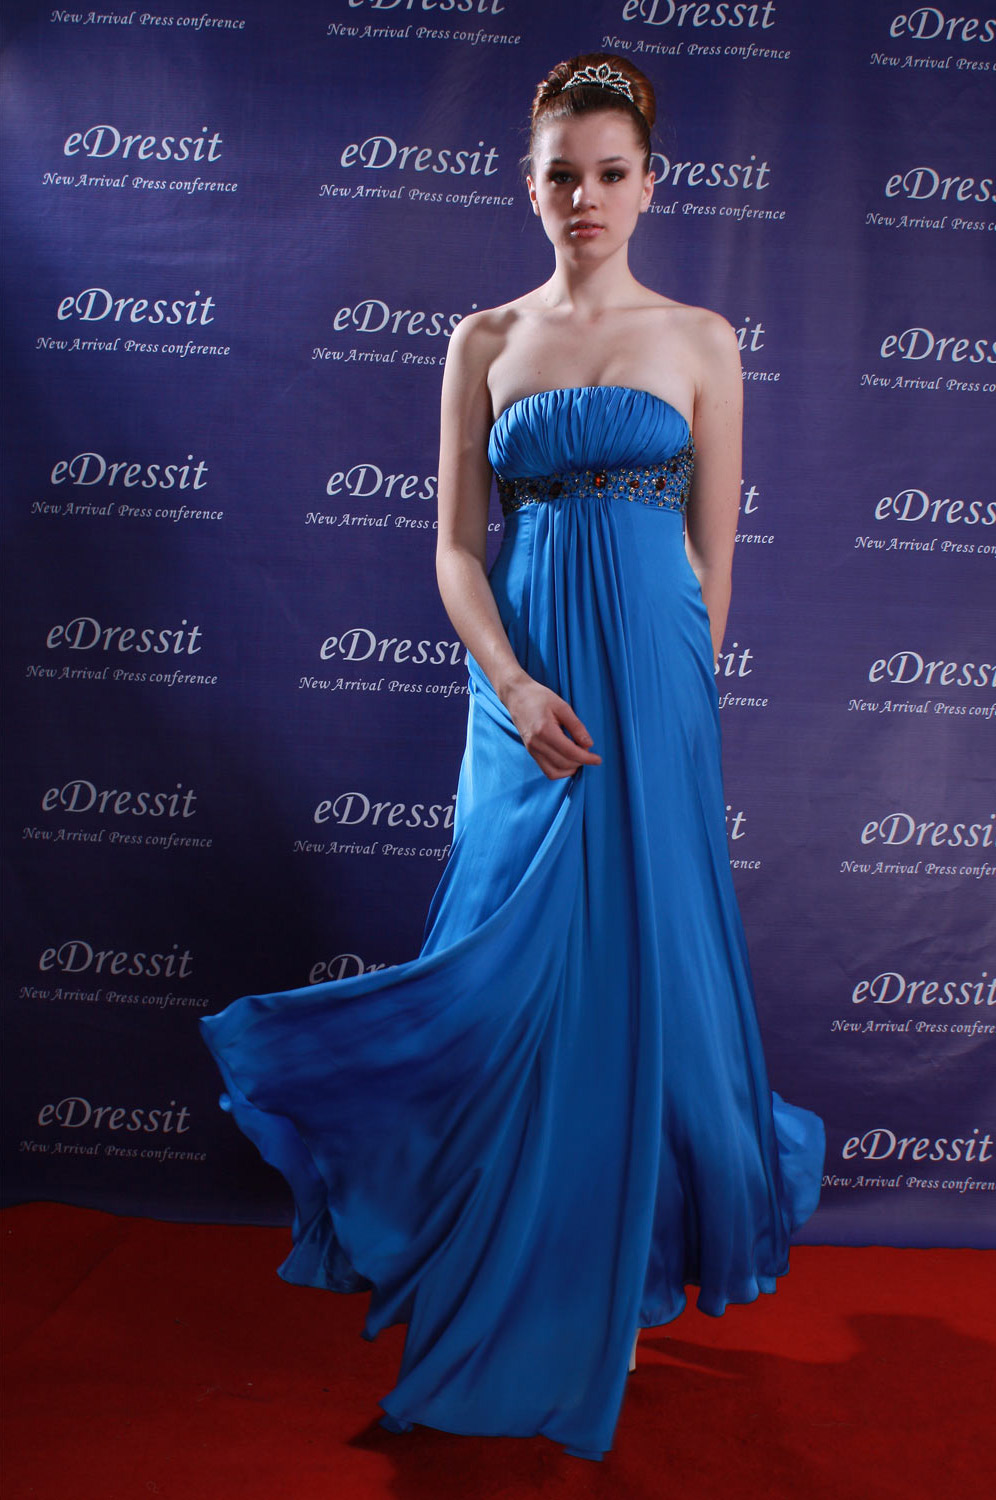 eDressit Evening Dress-on sale! new with tags! (00777405s)